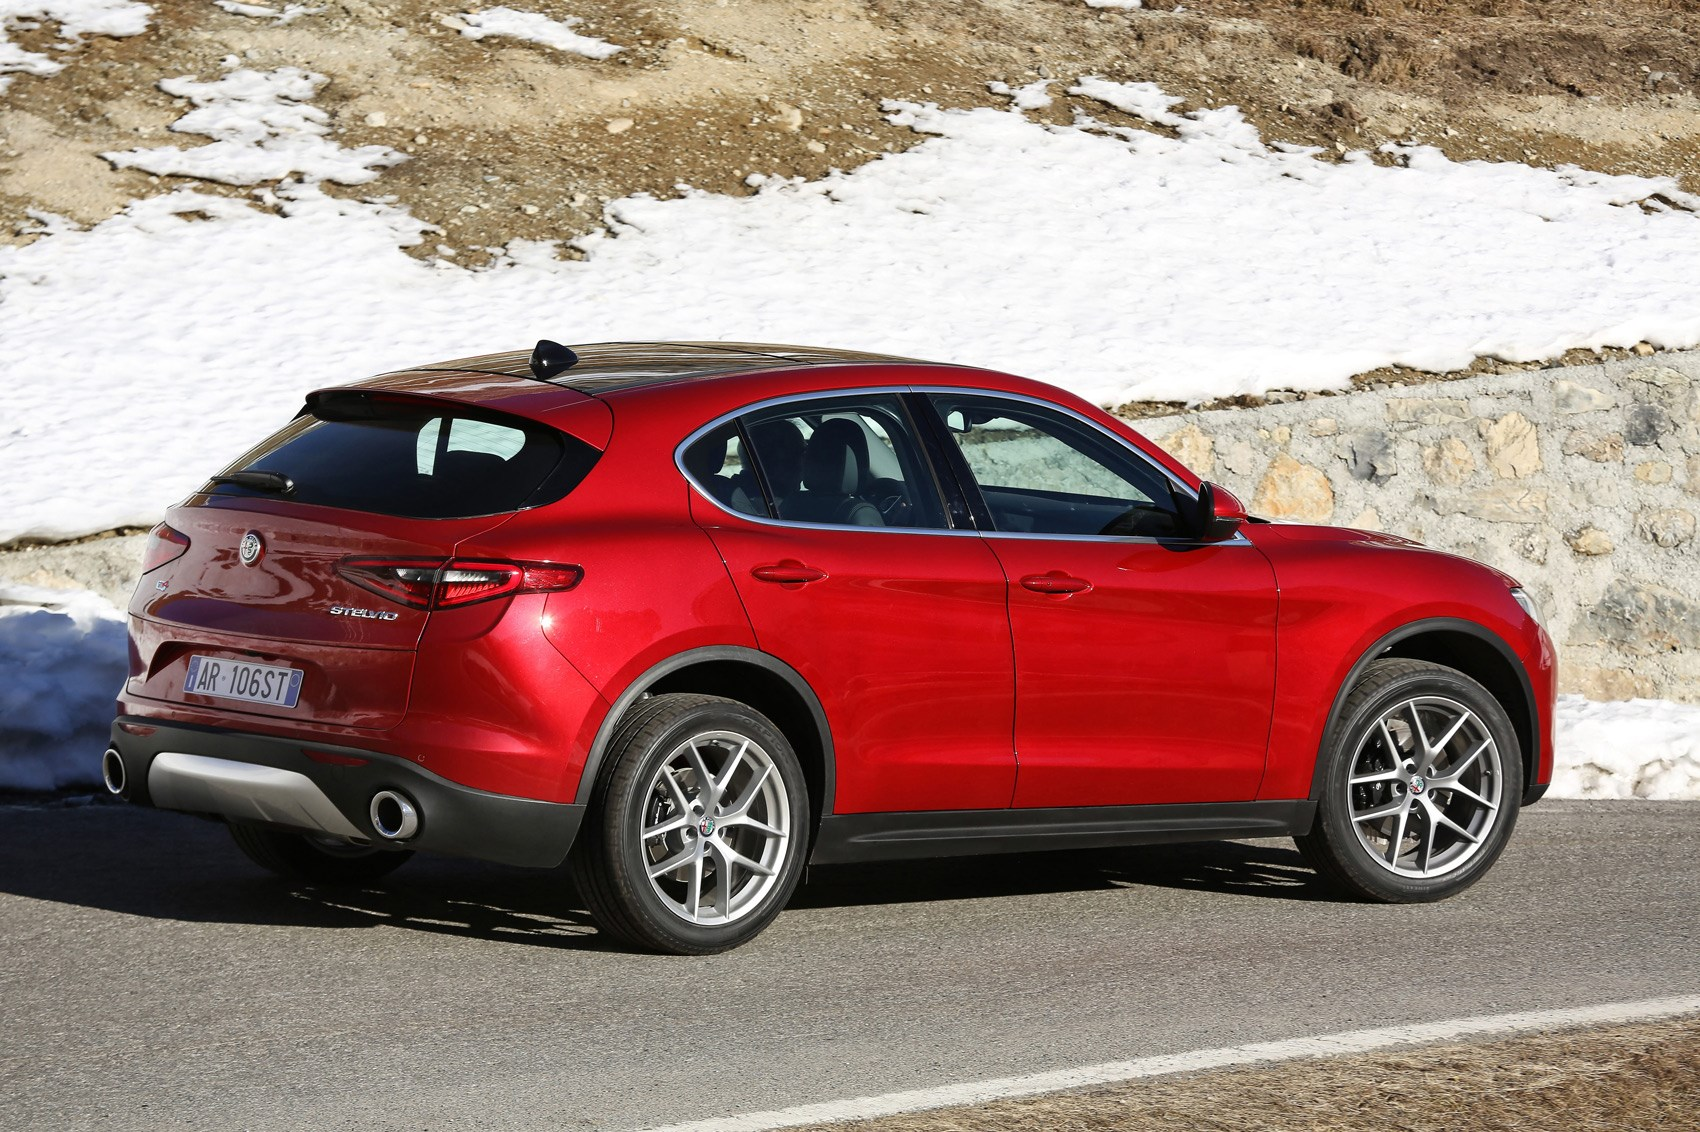 Stelvio By CAR Magazine